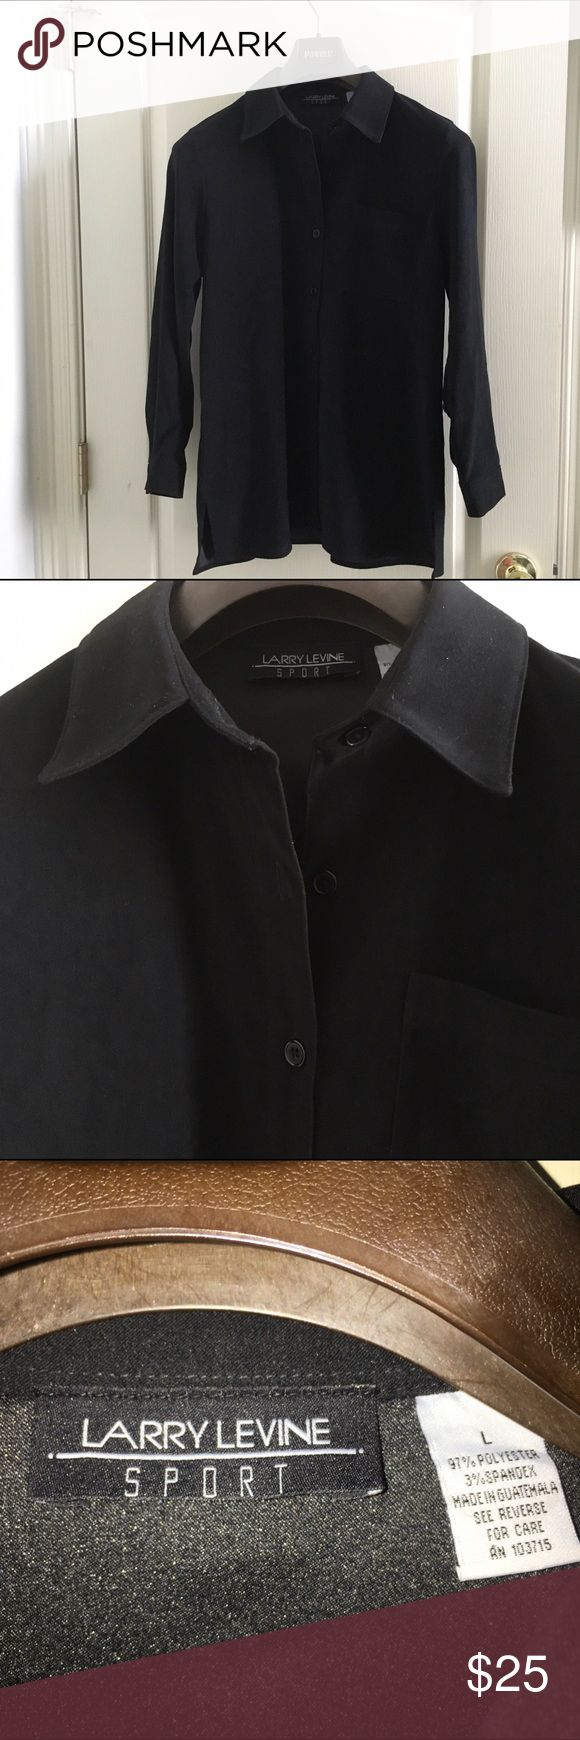 Black Suede Shirt / Jacket Black Suede Shirt / Jacket 97% Polyester.                       ✔️Offers Welcome✔️.                                                     🚭Smoke Free Home🚭.                                                         🏡Pet Free Home🏡.                                                   🚫No Trading🚫 Larry Levine Jackets & Coats